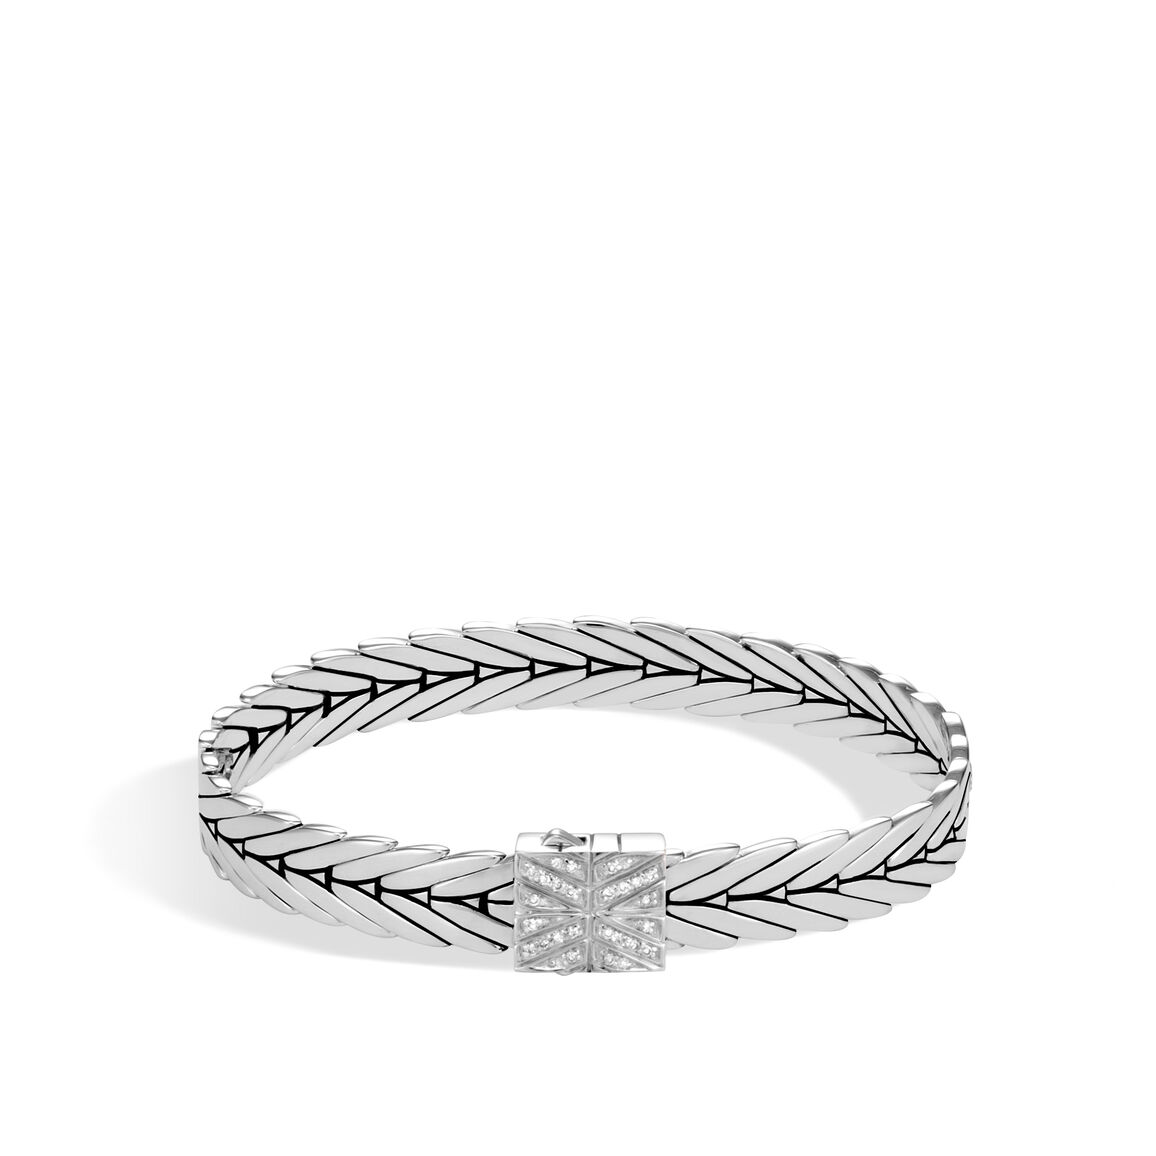 Modern Chain 8MM Bracelet in Silver with Diamonds